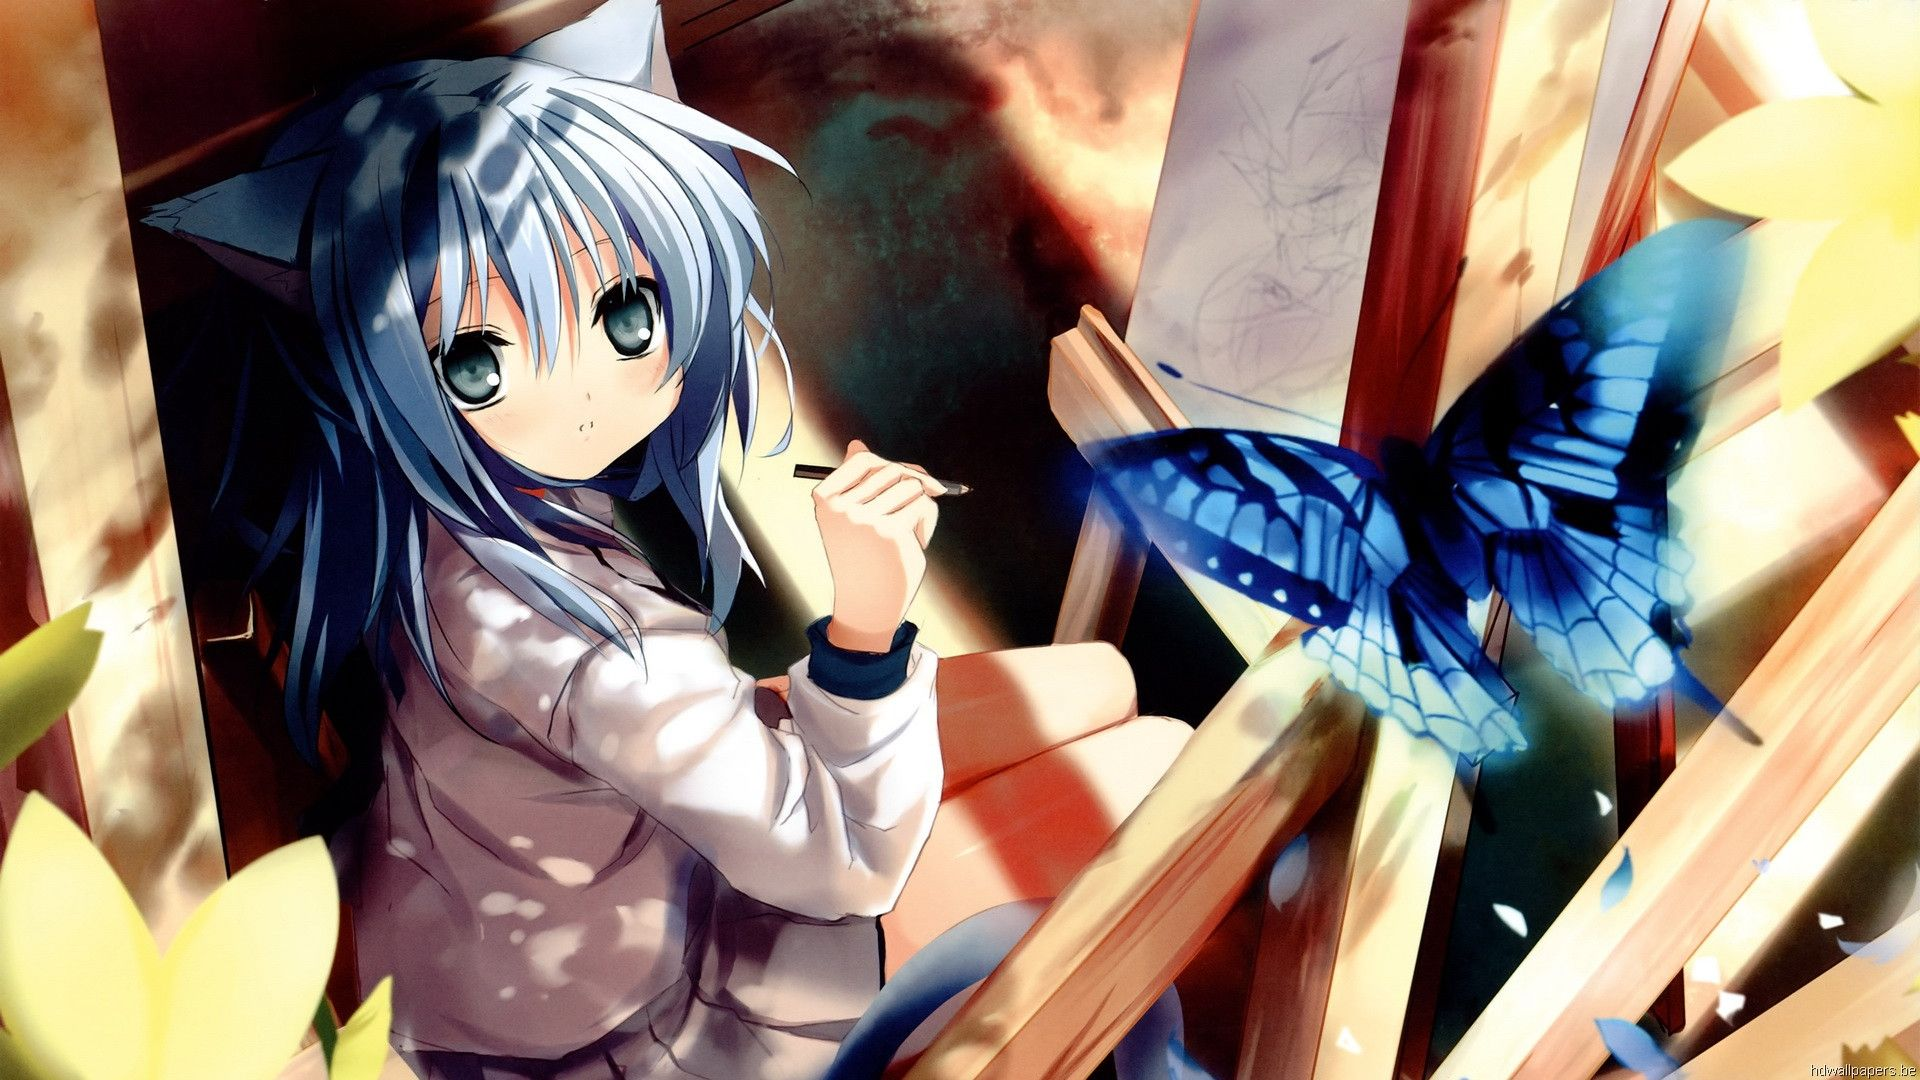 Hd Anime picture free download